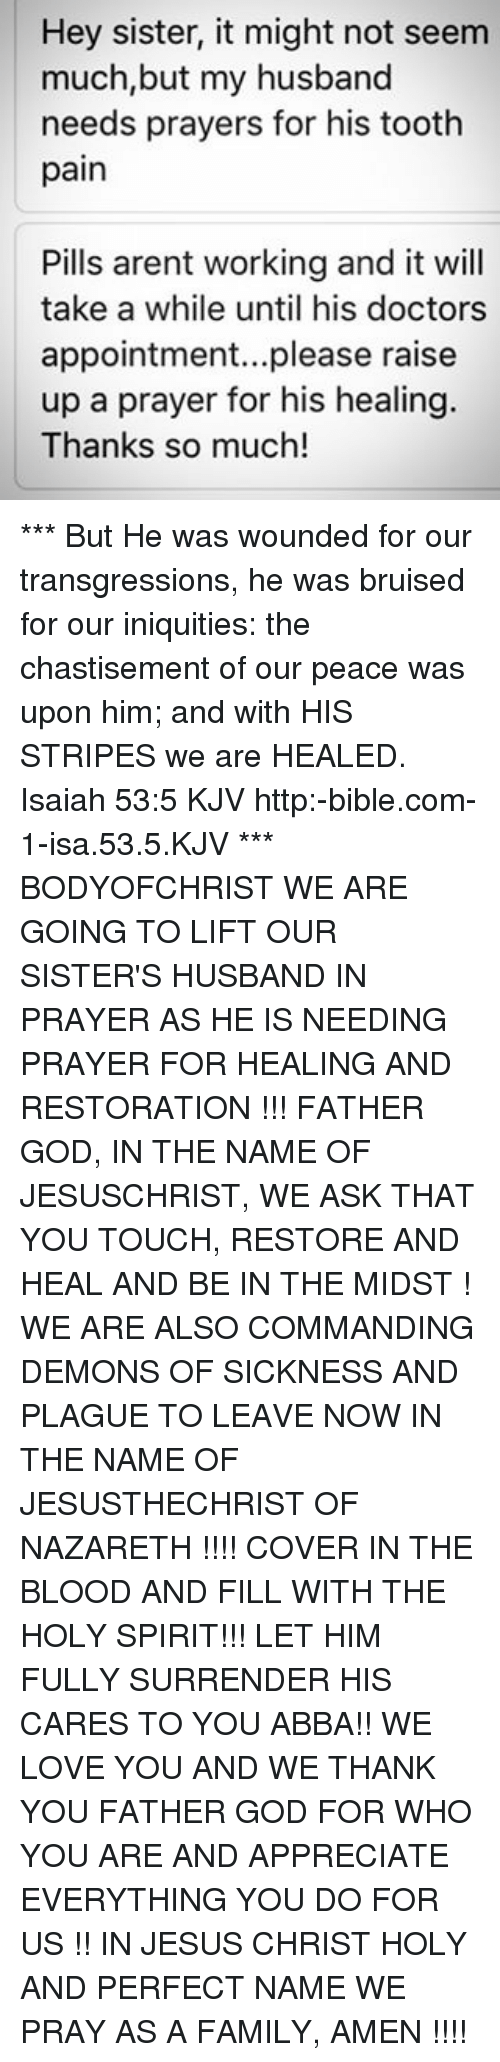 Hey Sister It Might Not Seem Much but My Husband Needs Prayers for